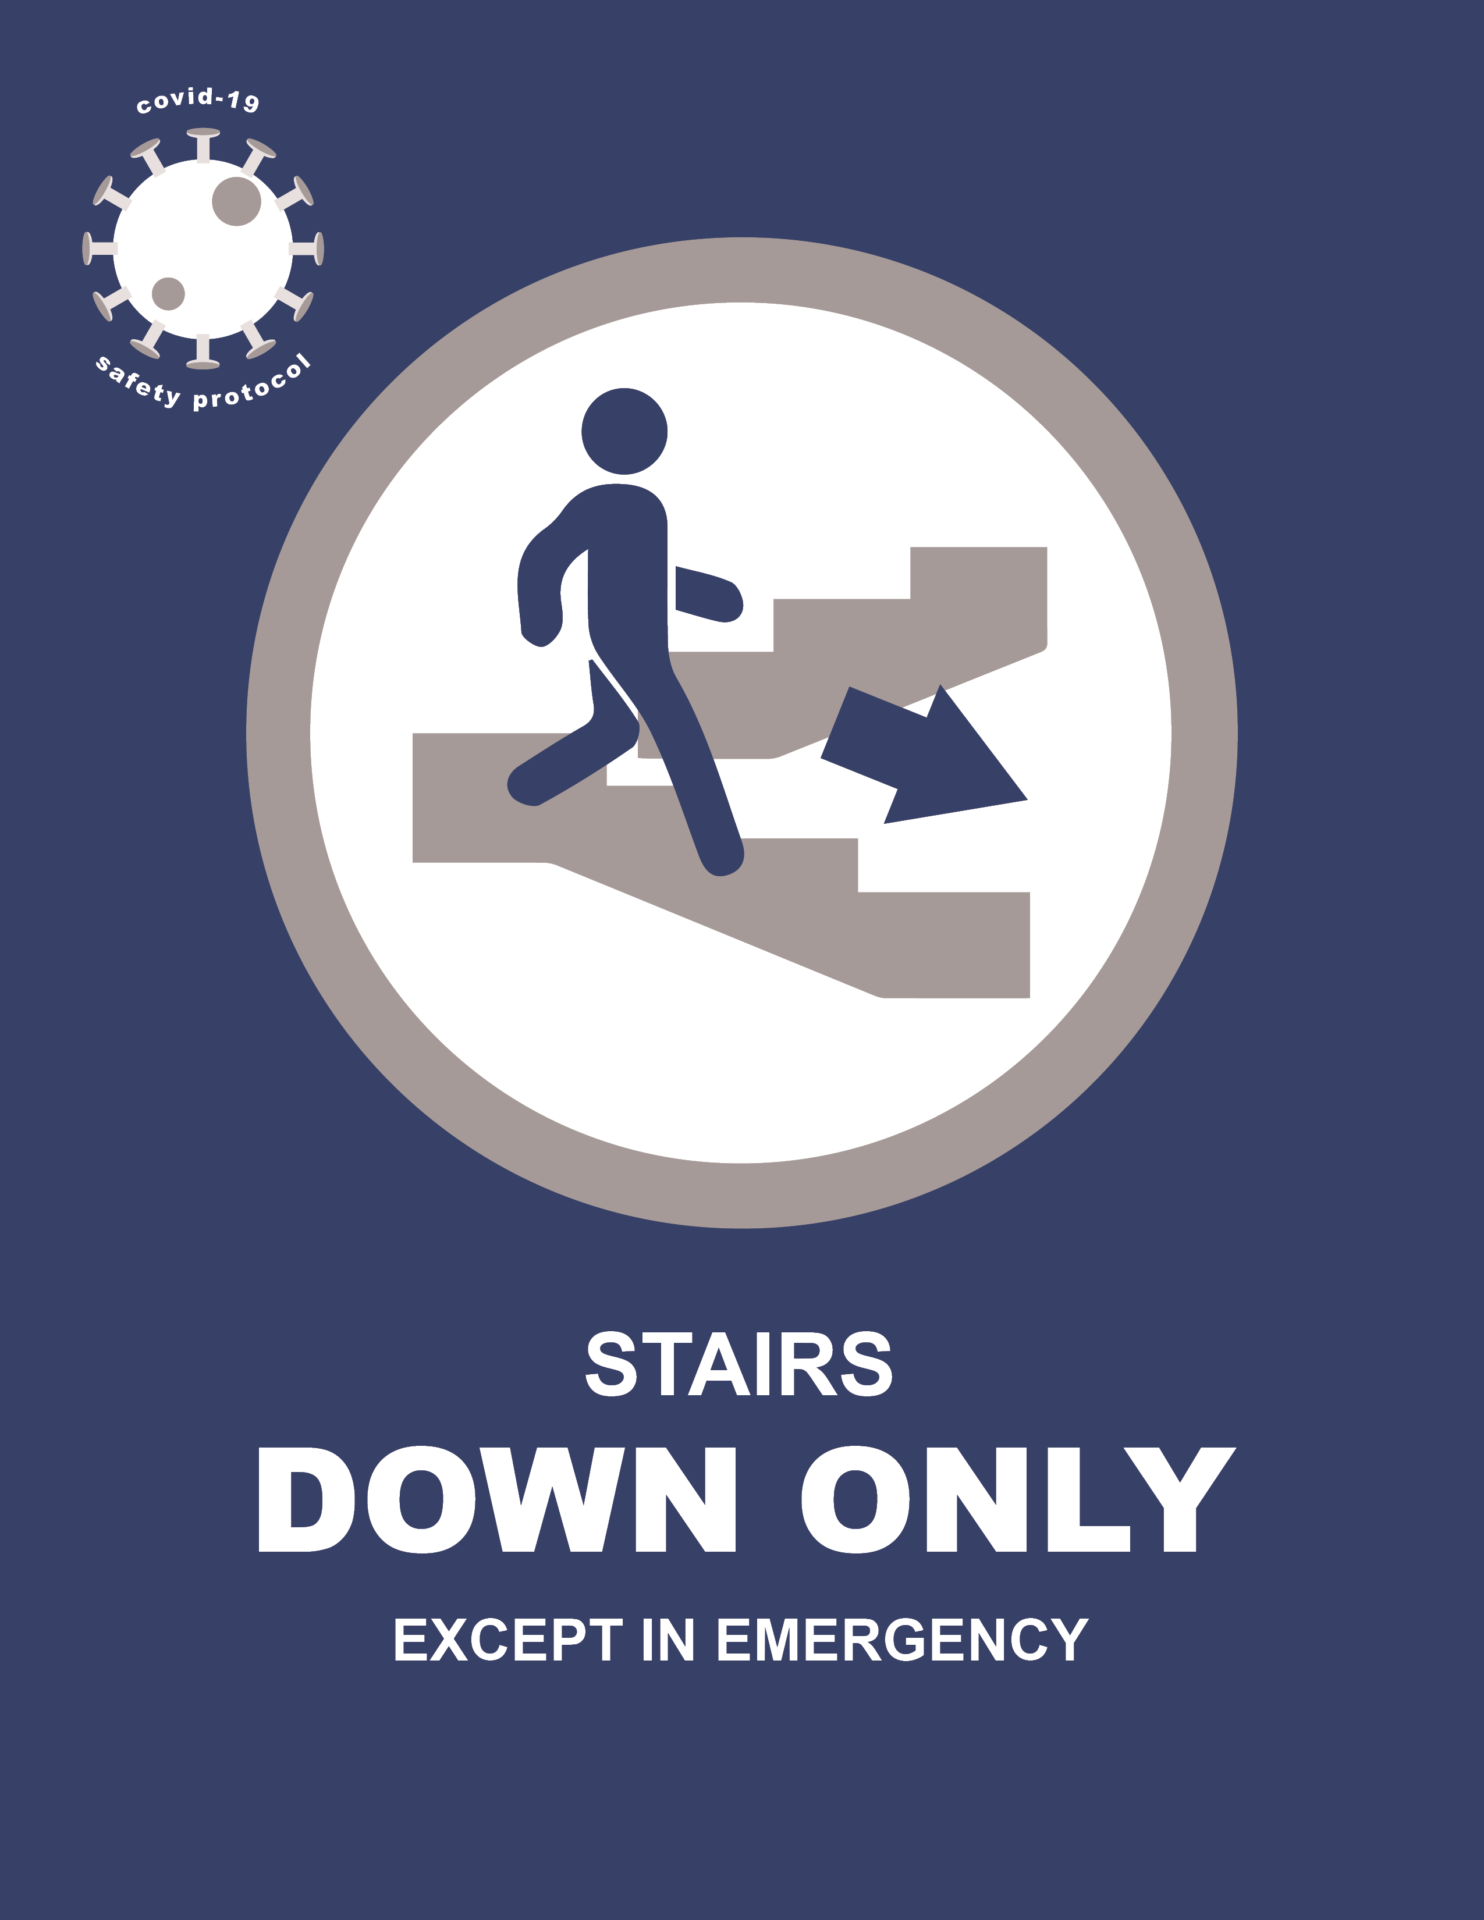 COVID-19 Signage For Stair Flow